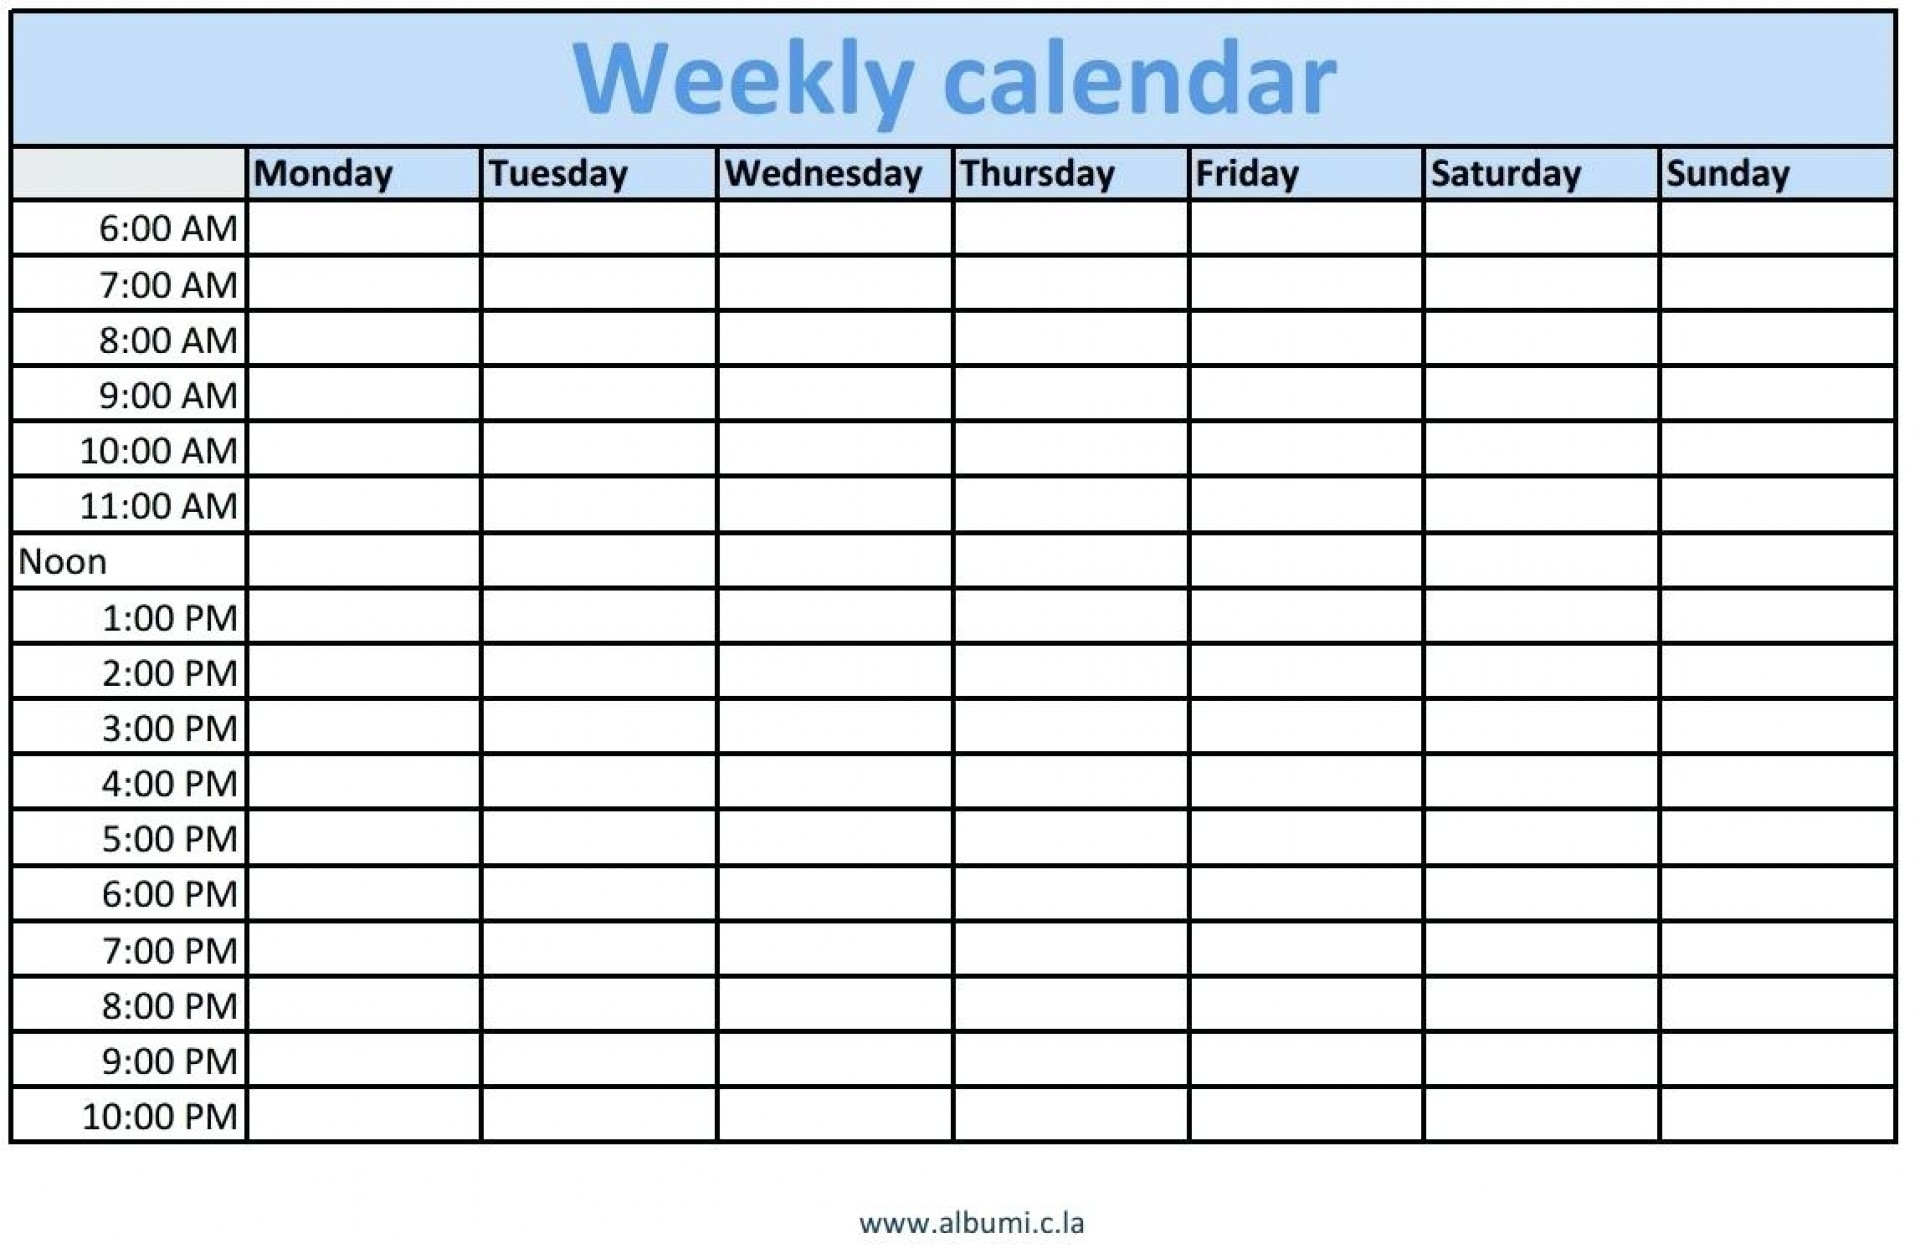 Blank Daily Schedule With Time Slots | Calendar Printing Example with Daily Schedule With Time Slots